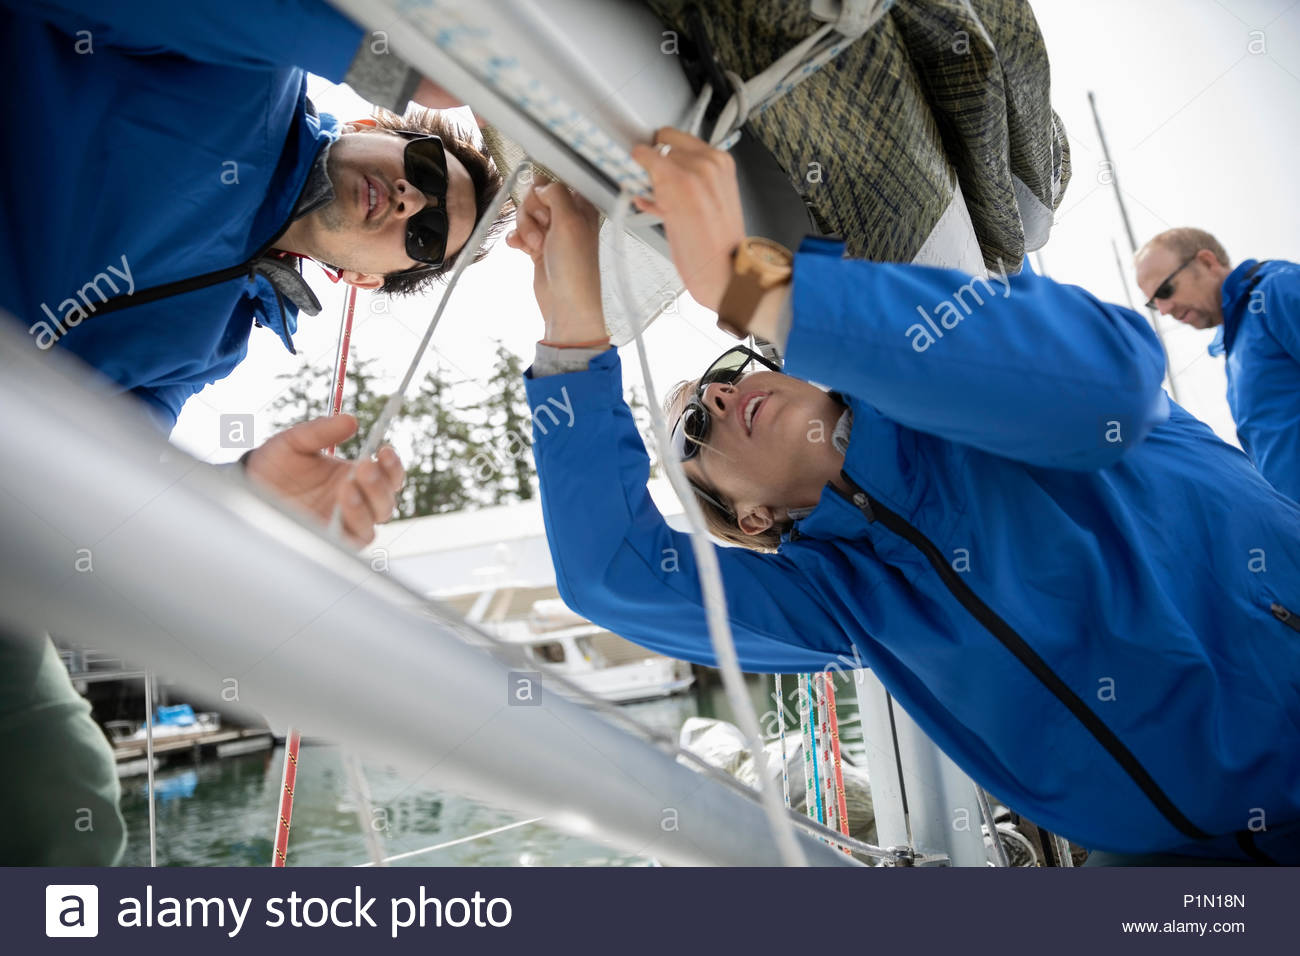 Sailing team preparing sail on sailboat - Stock Image